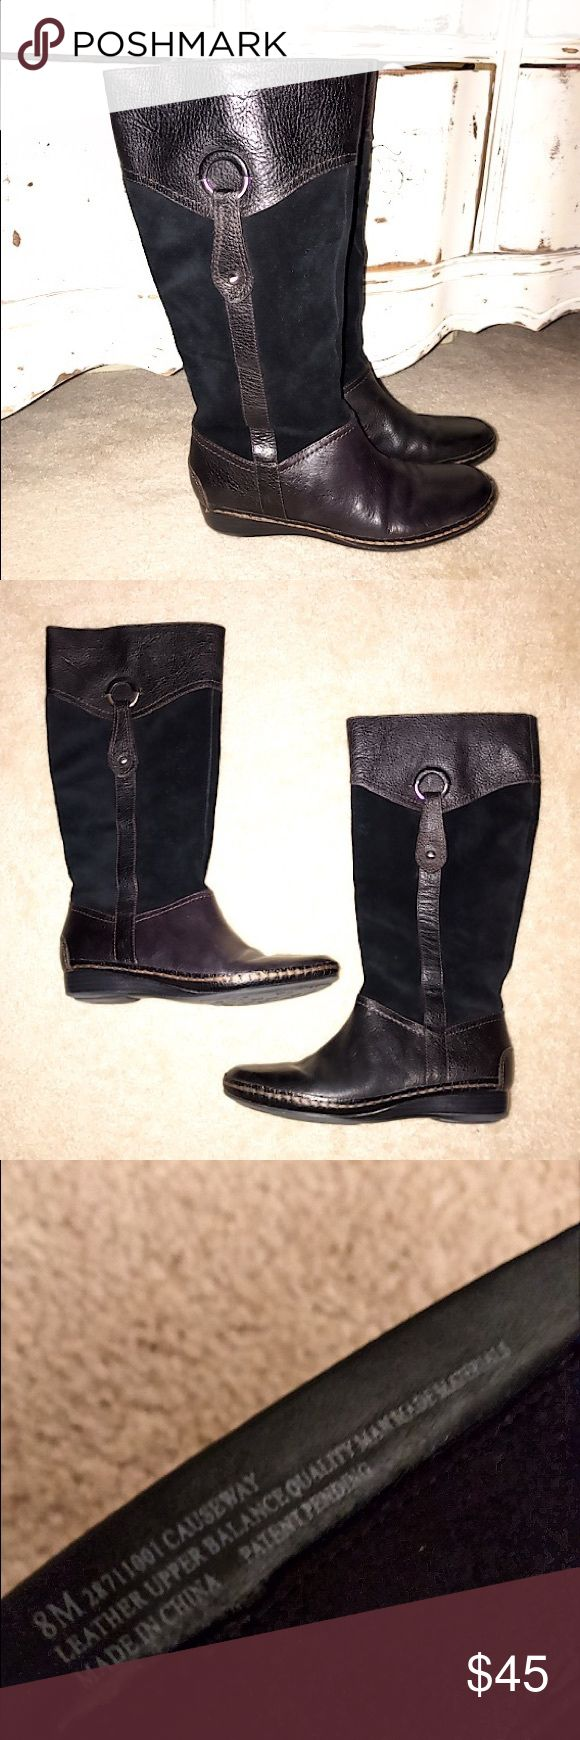 Naturalizer✨Genuine Leather Boots Comfy brown with black suede boots. Silver hardware. Great condition. Naturalizer Shoes